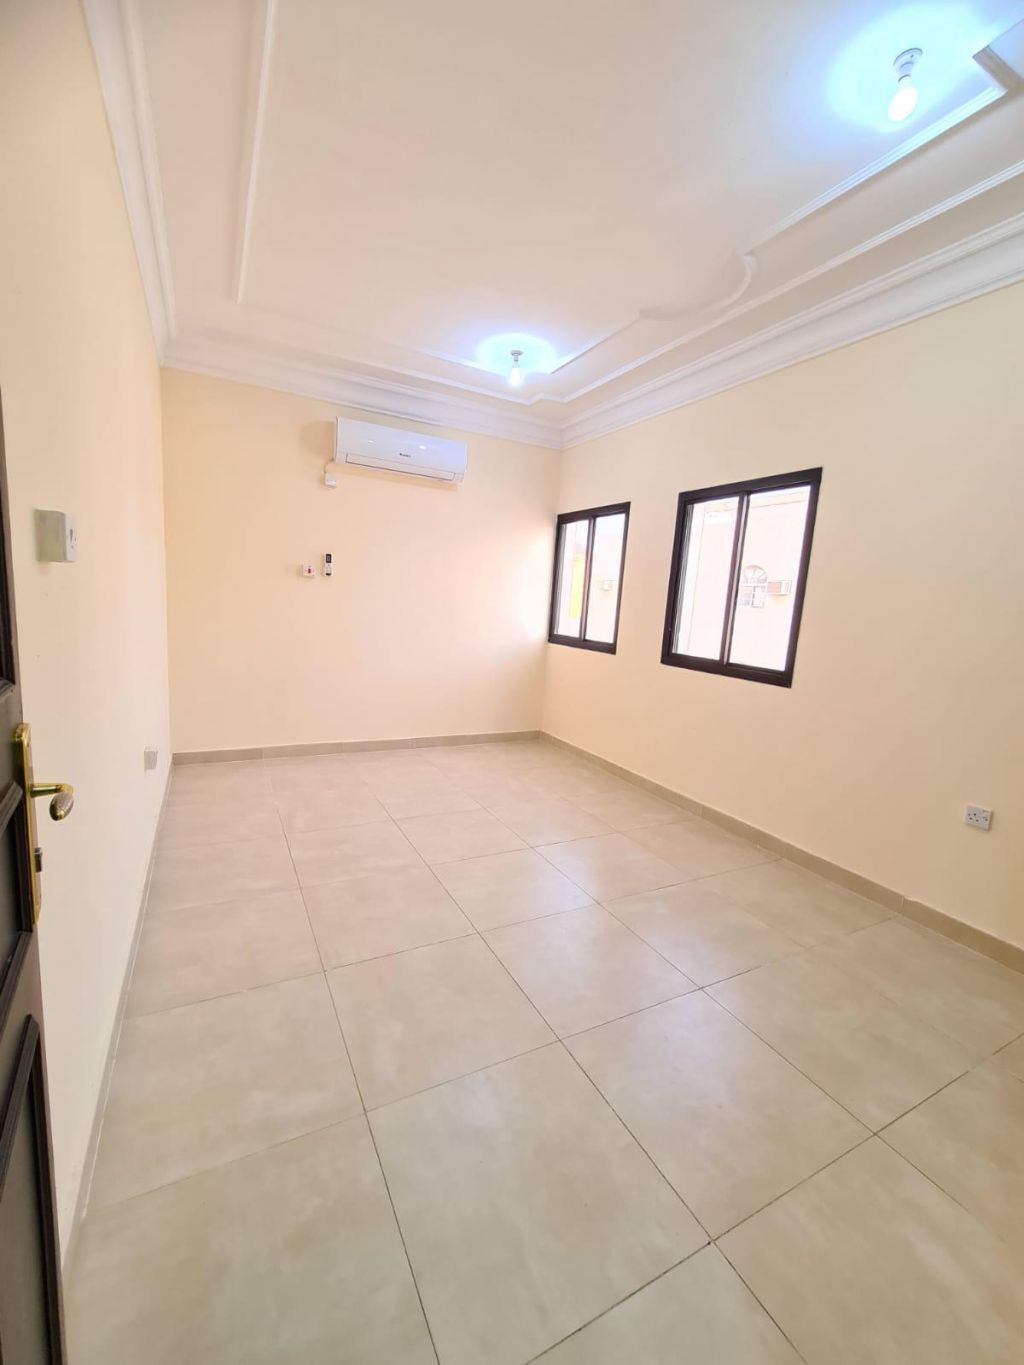 Residential Property 1 Bedroom U/F Apartment  for rent in Old-Airport , Doha-Qatar #11209 - 1  image